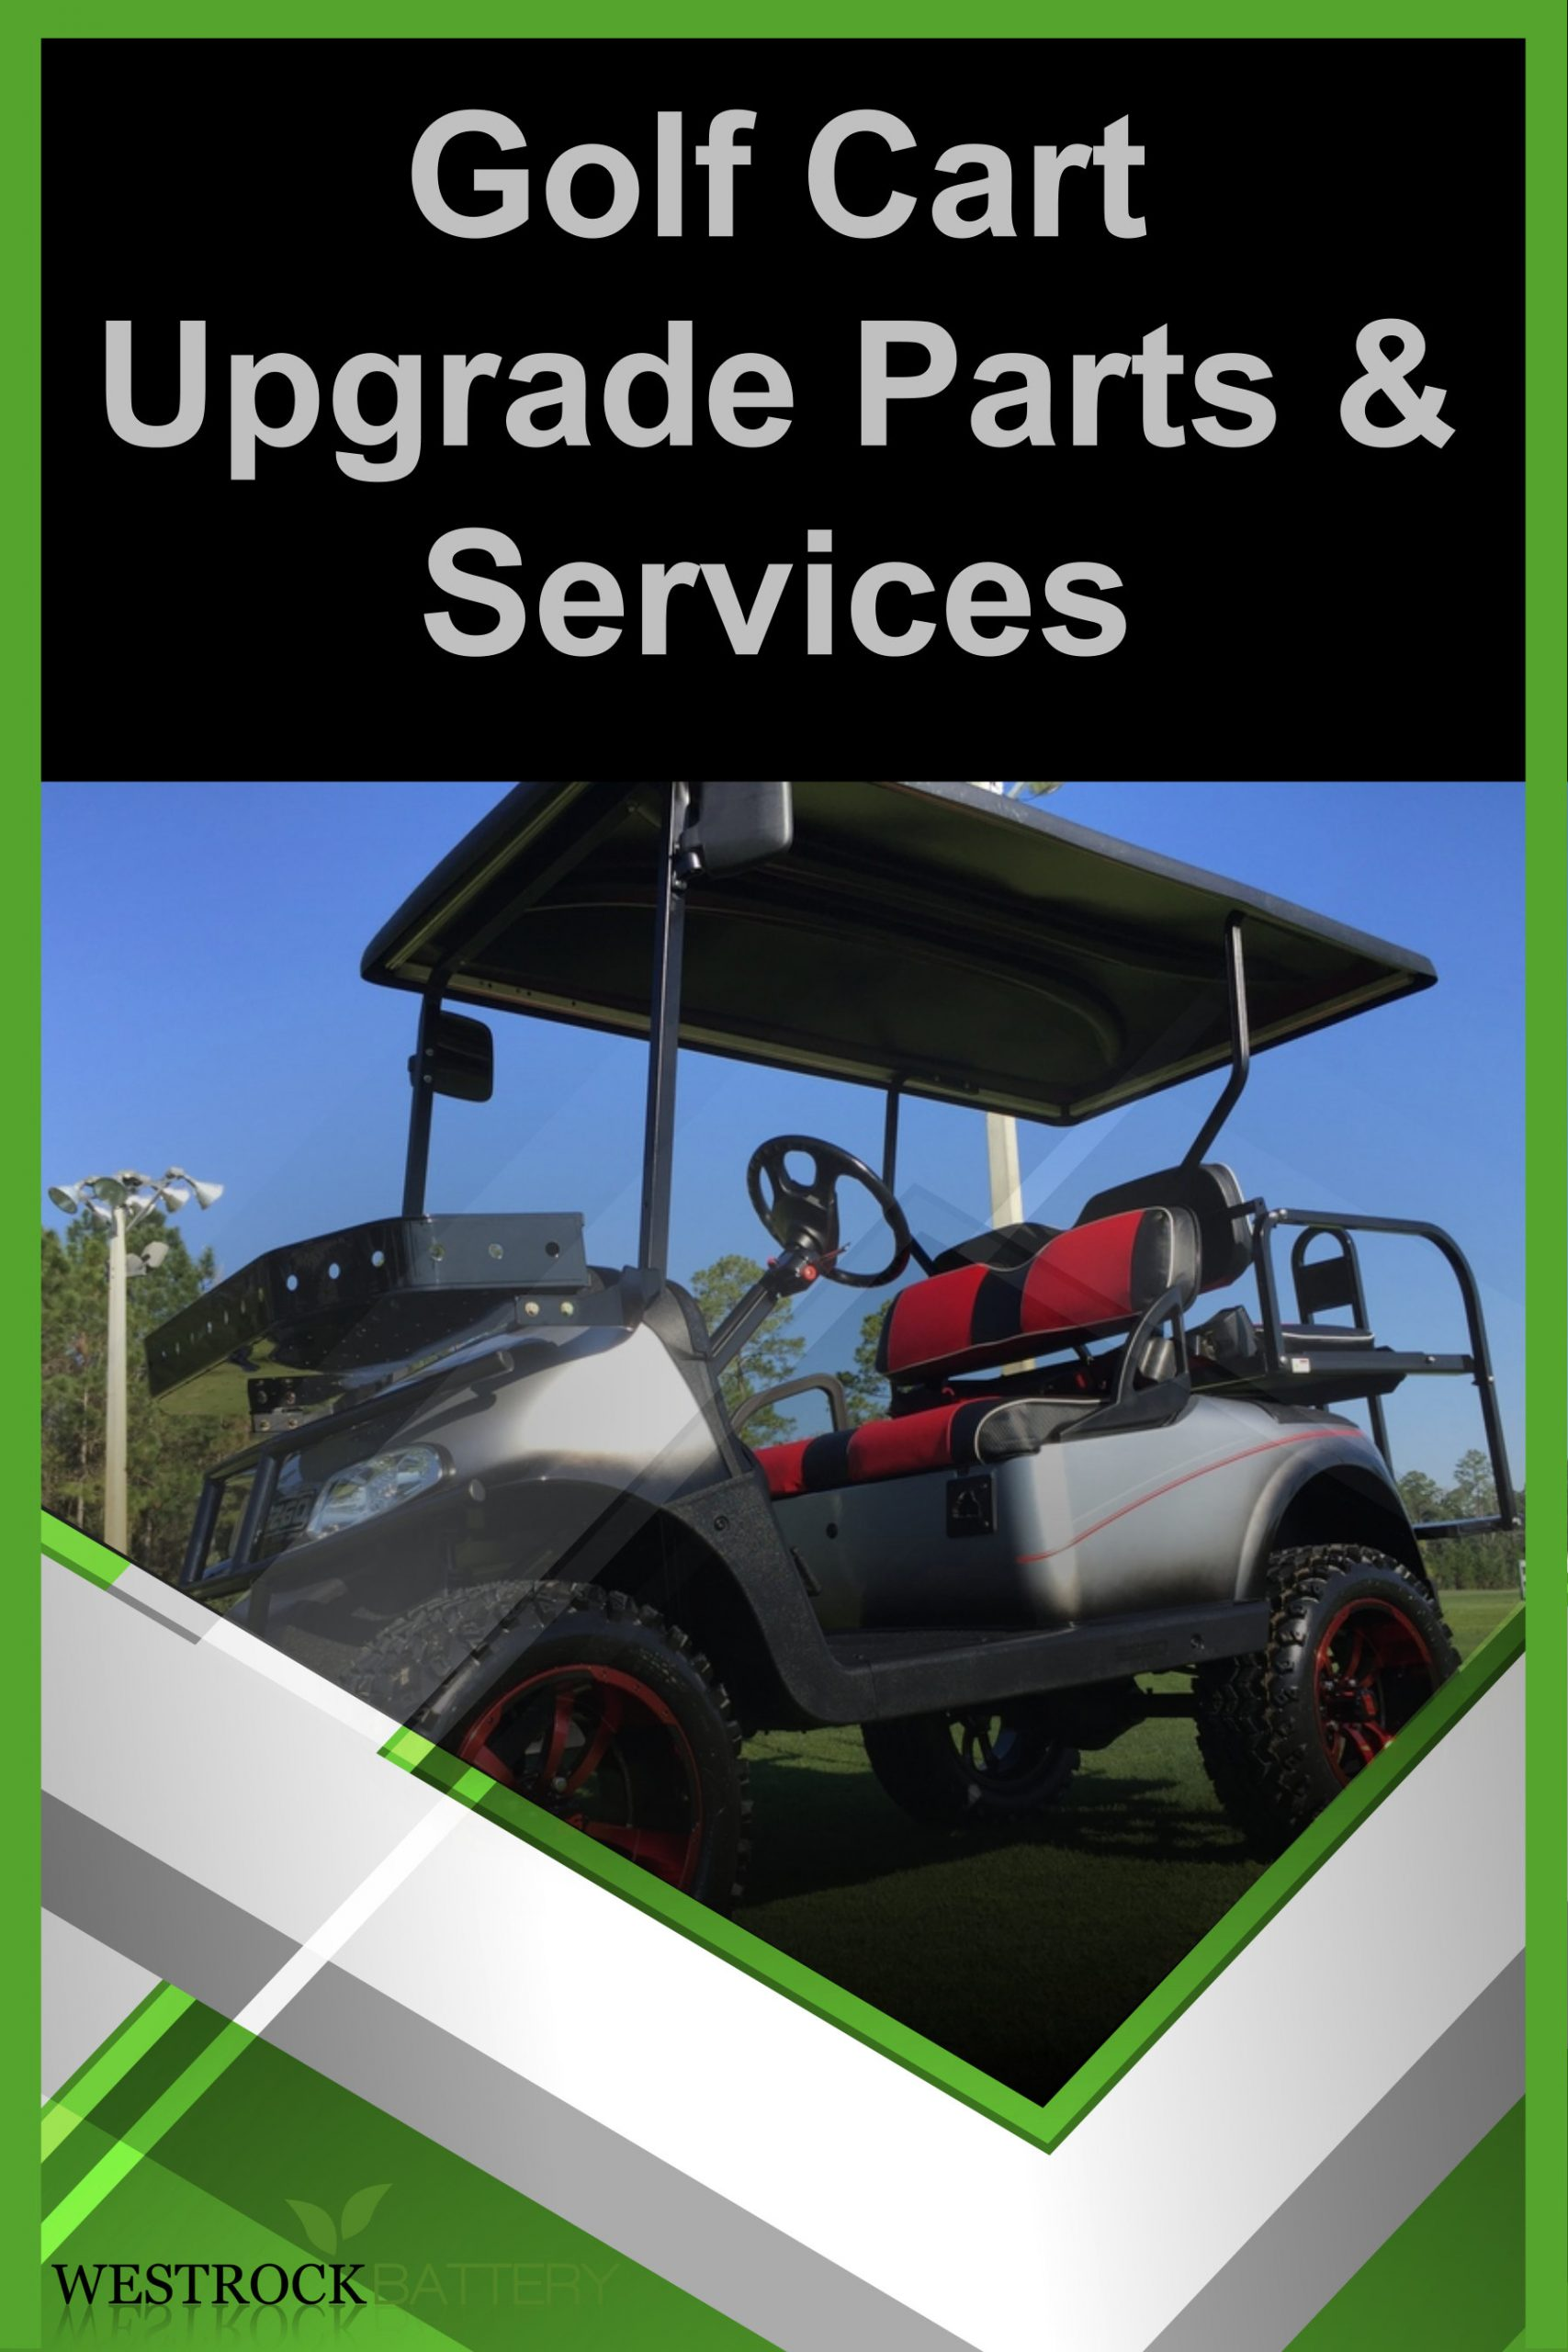 Gas & Electric Golf Cart Upgrades